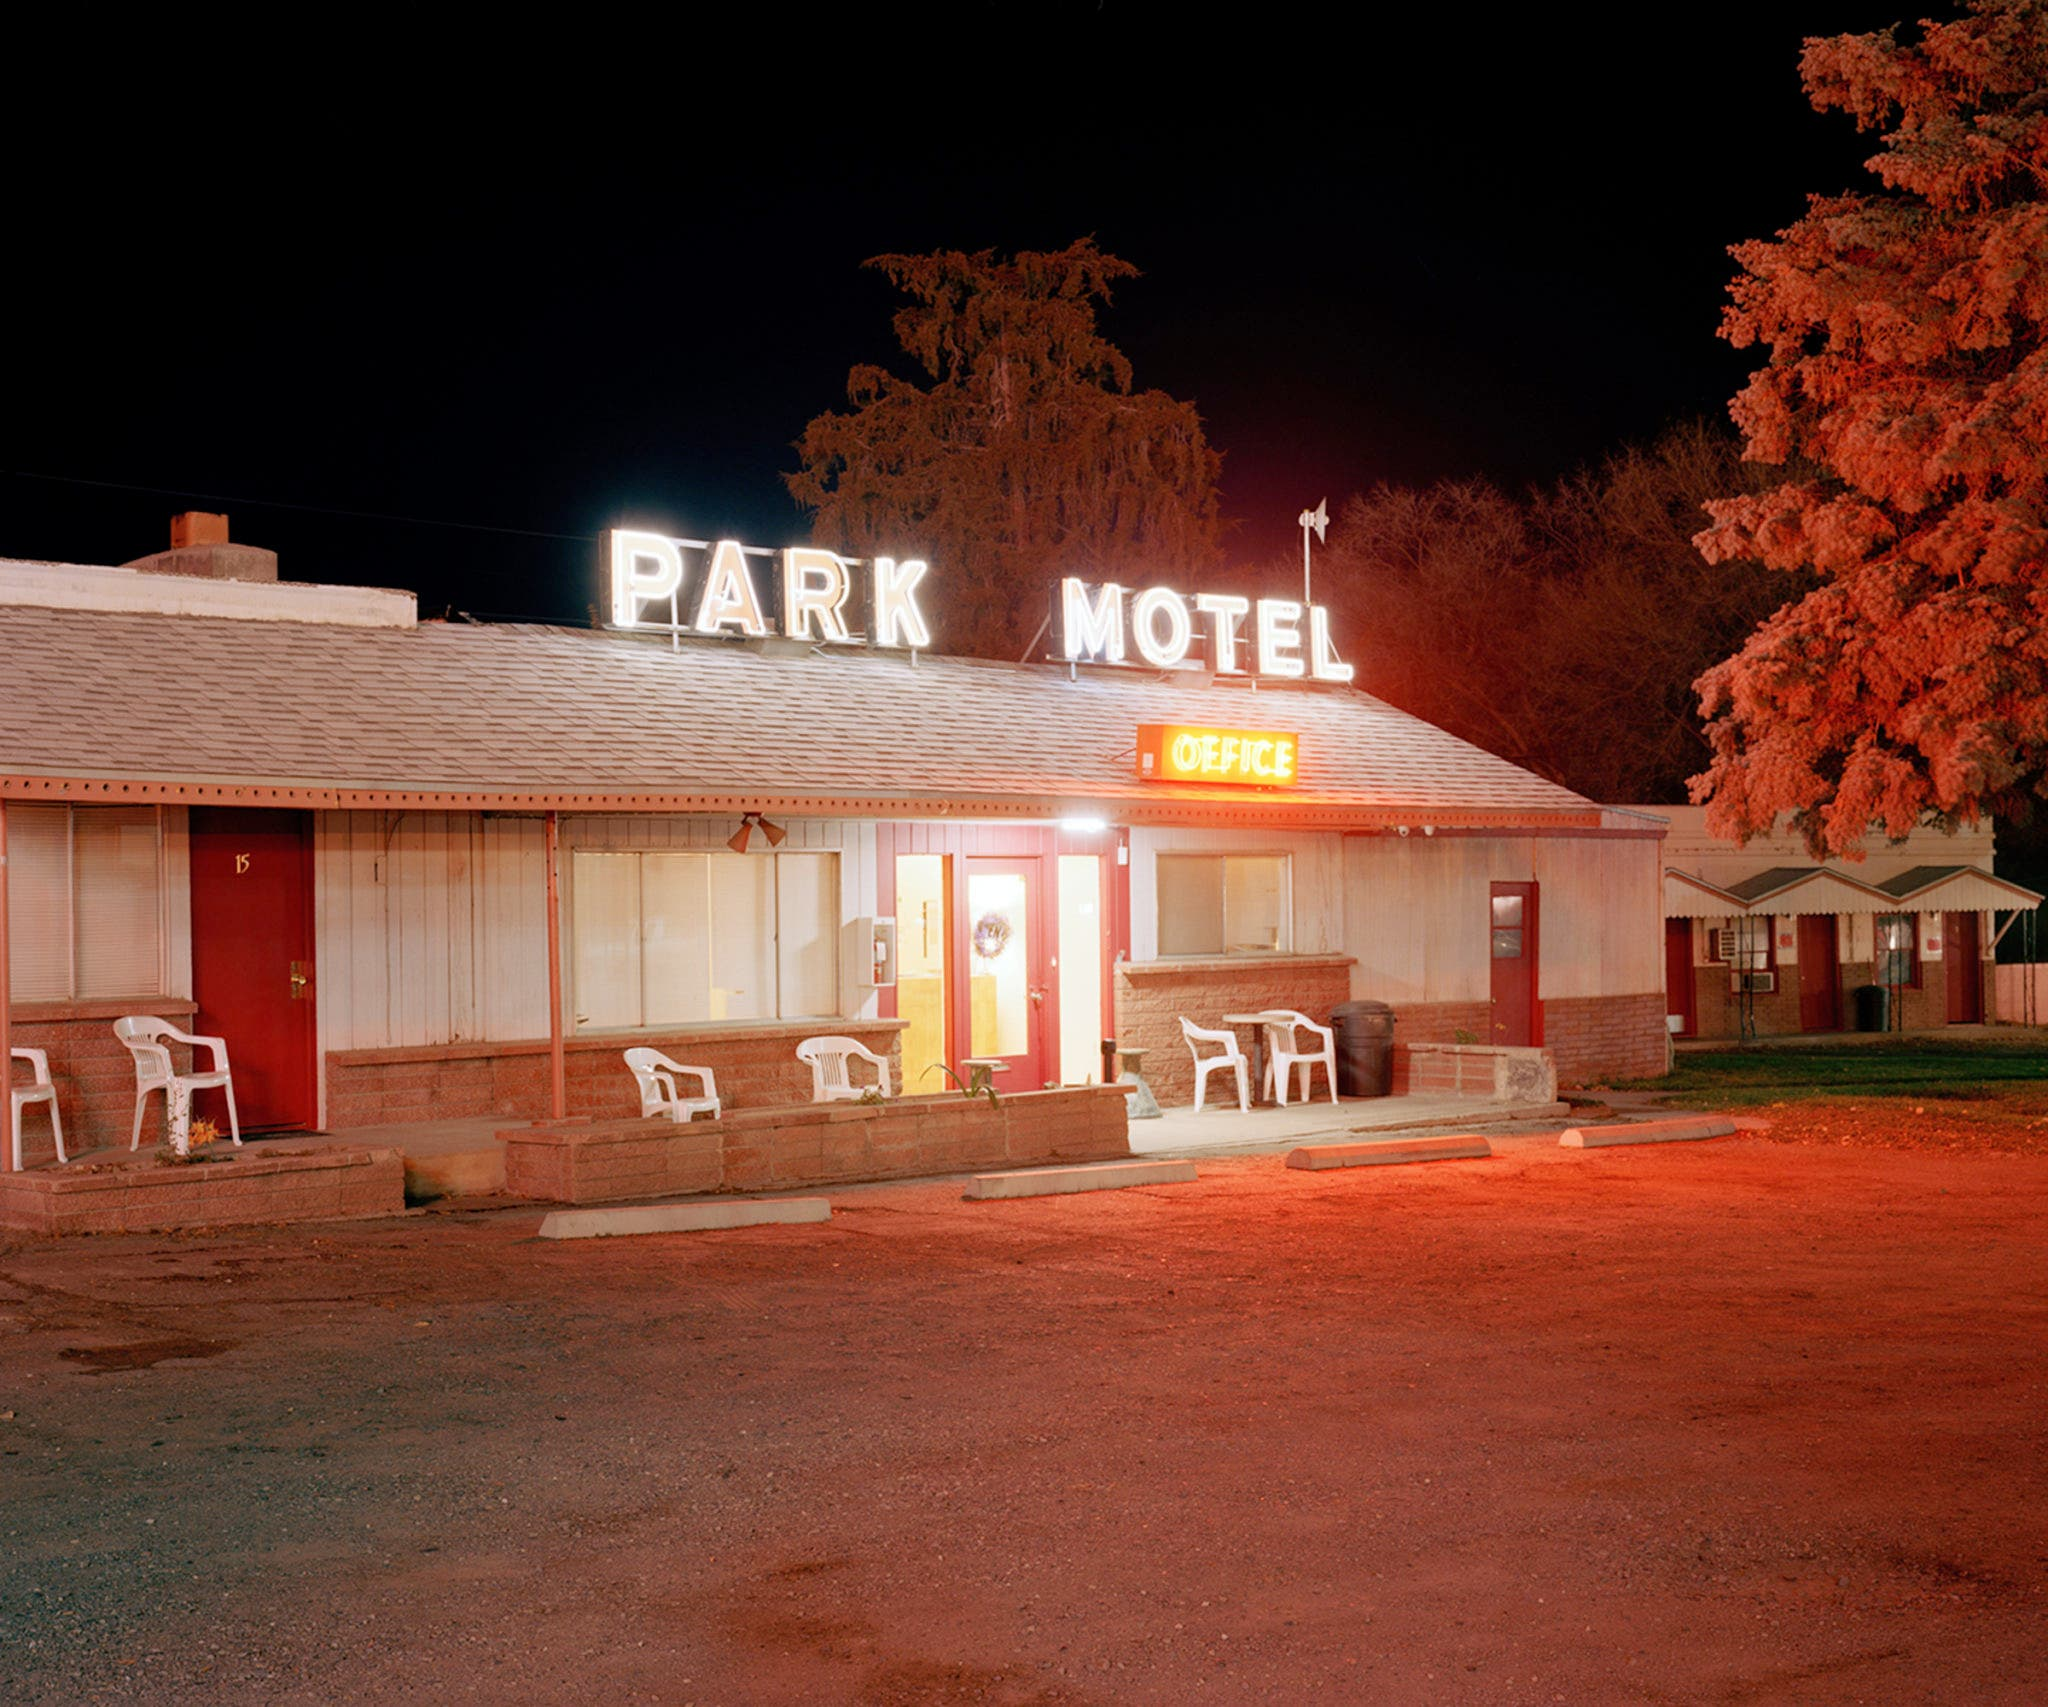 David Egan's Neon-Hued Photographs of Rural Nevada